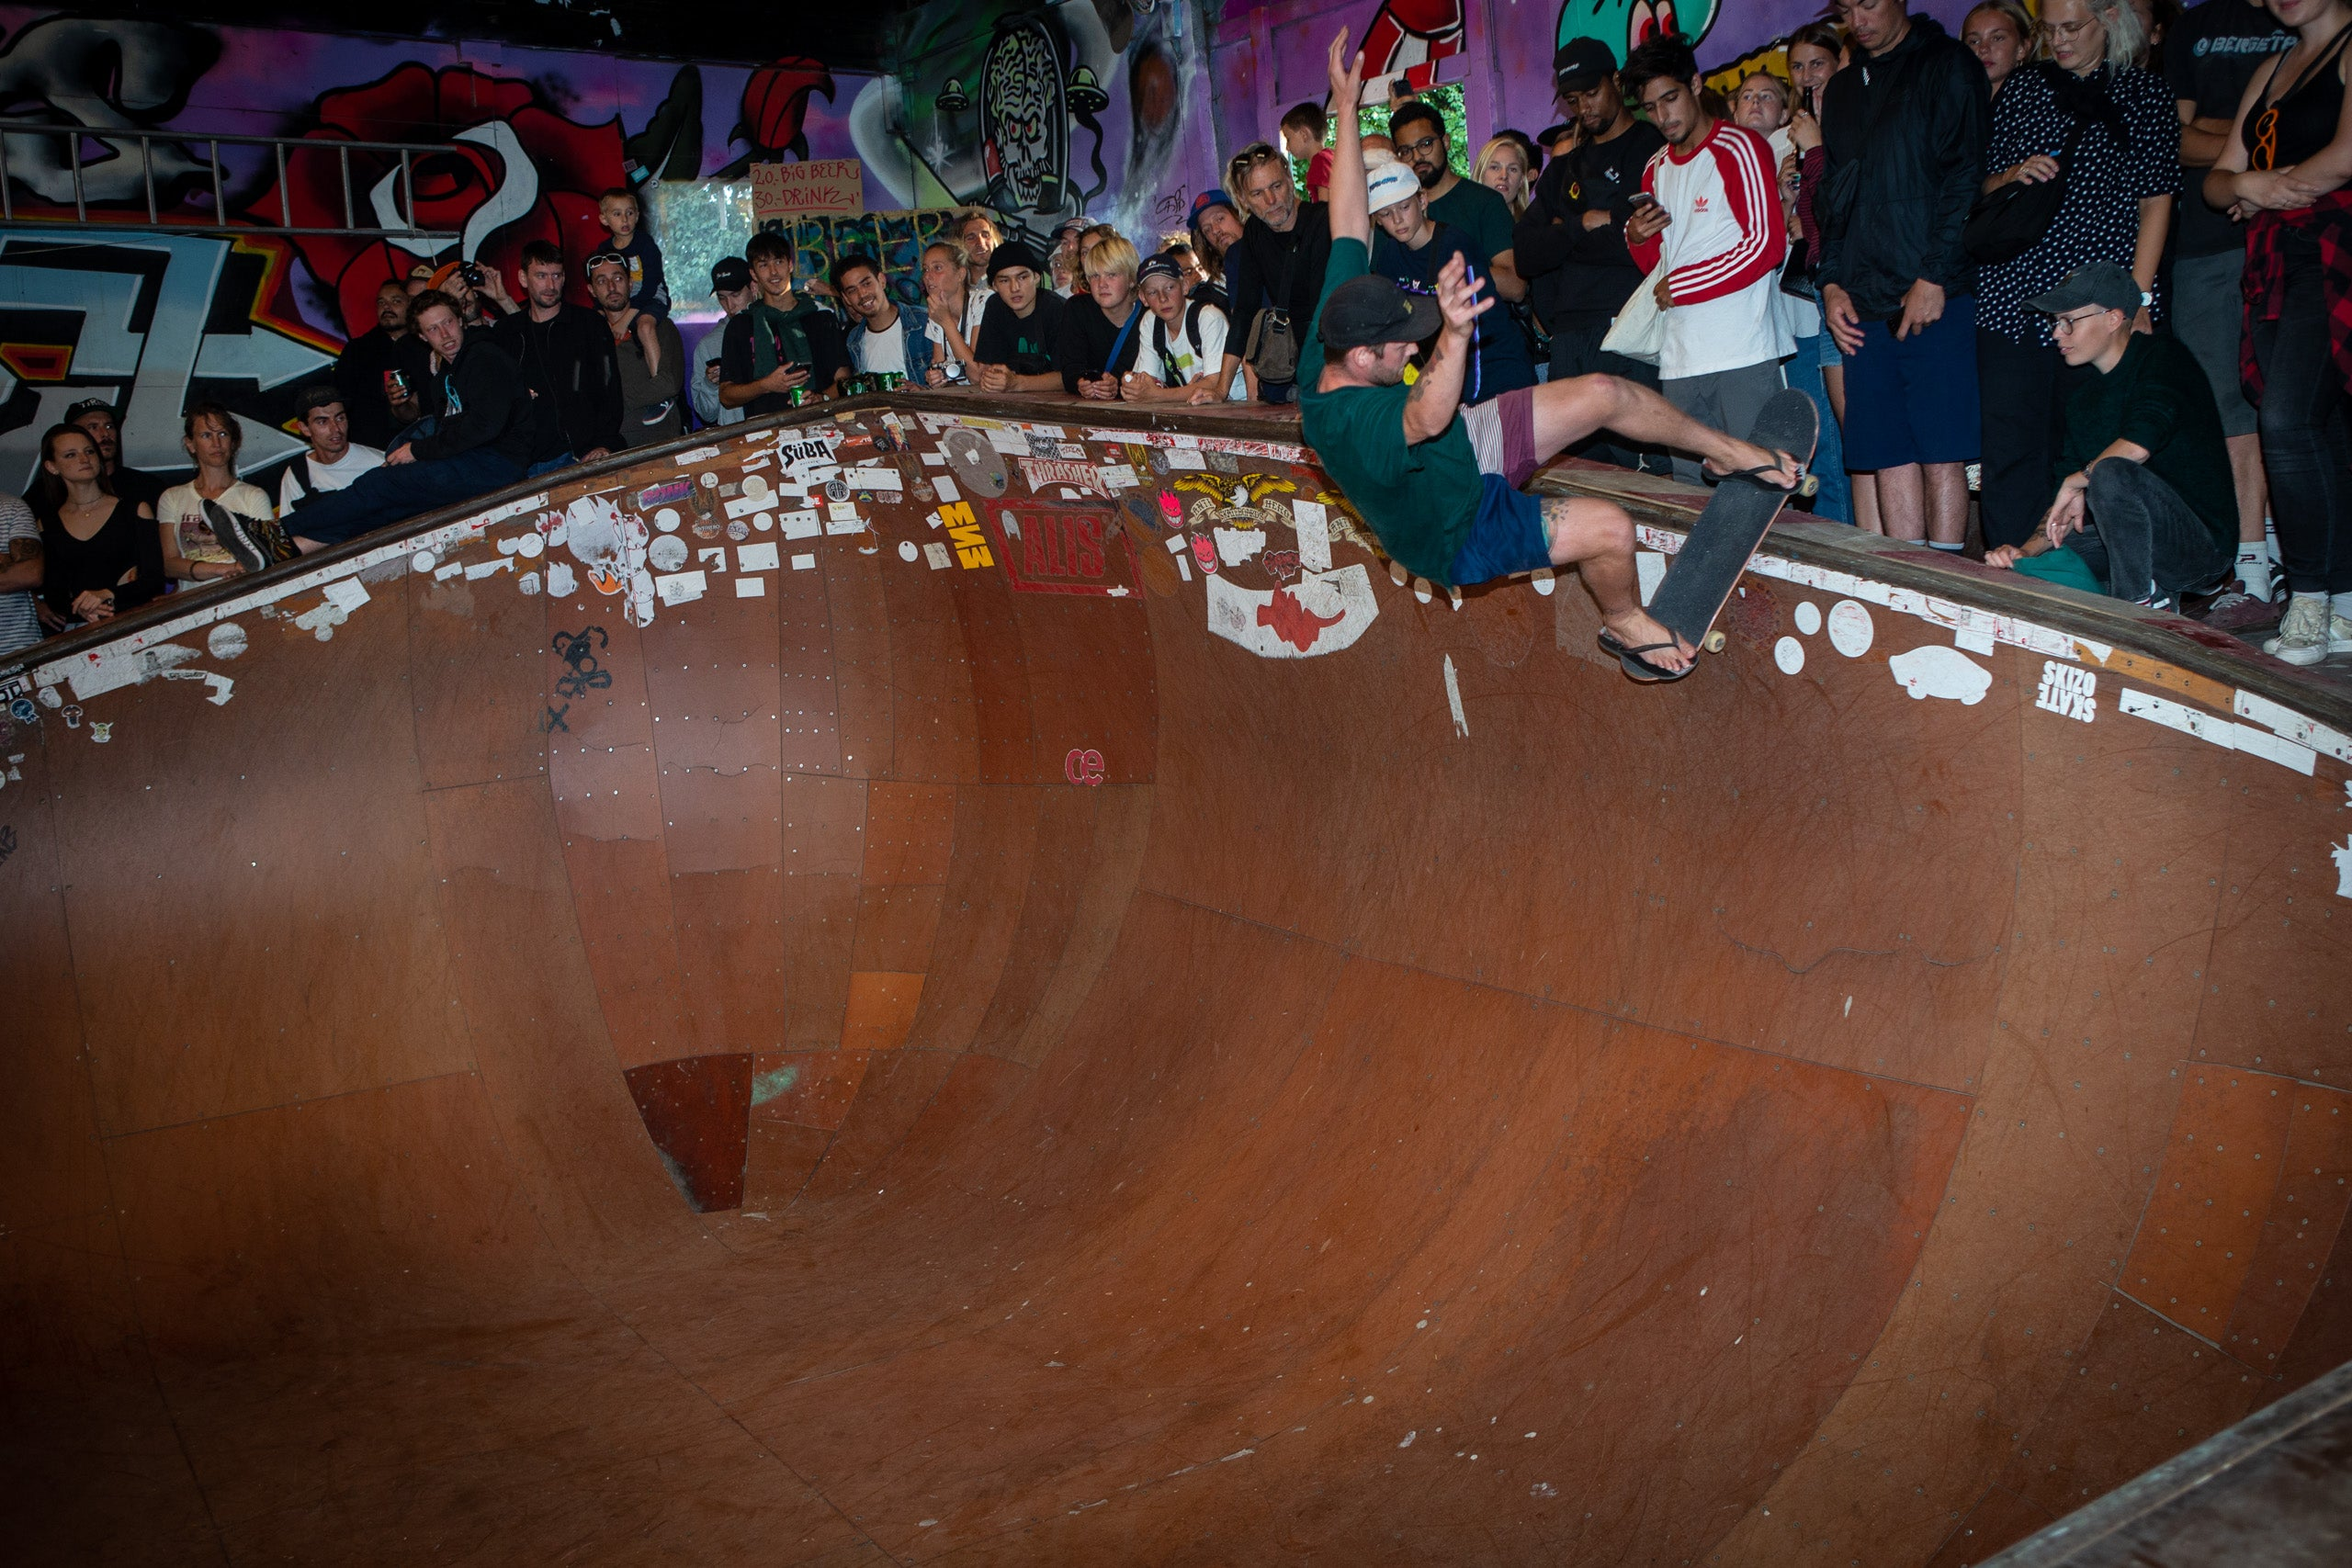 Joey in Alis Wonderland skate park 20th Bryce Kanights